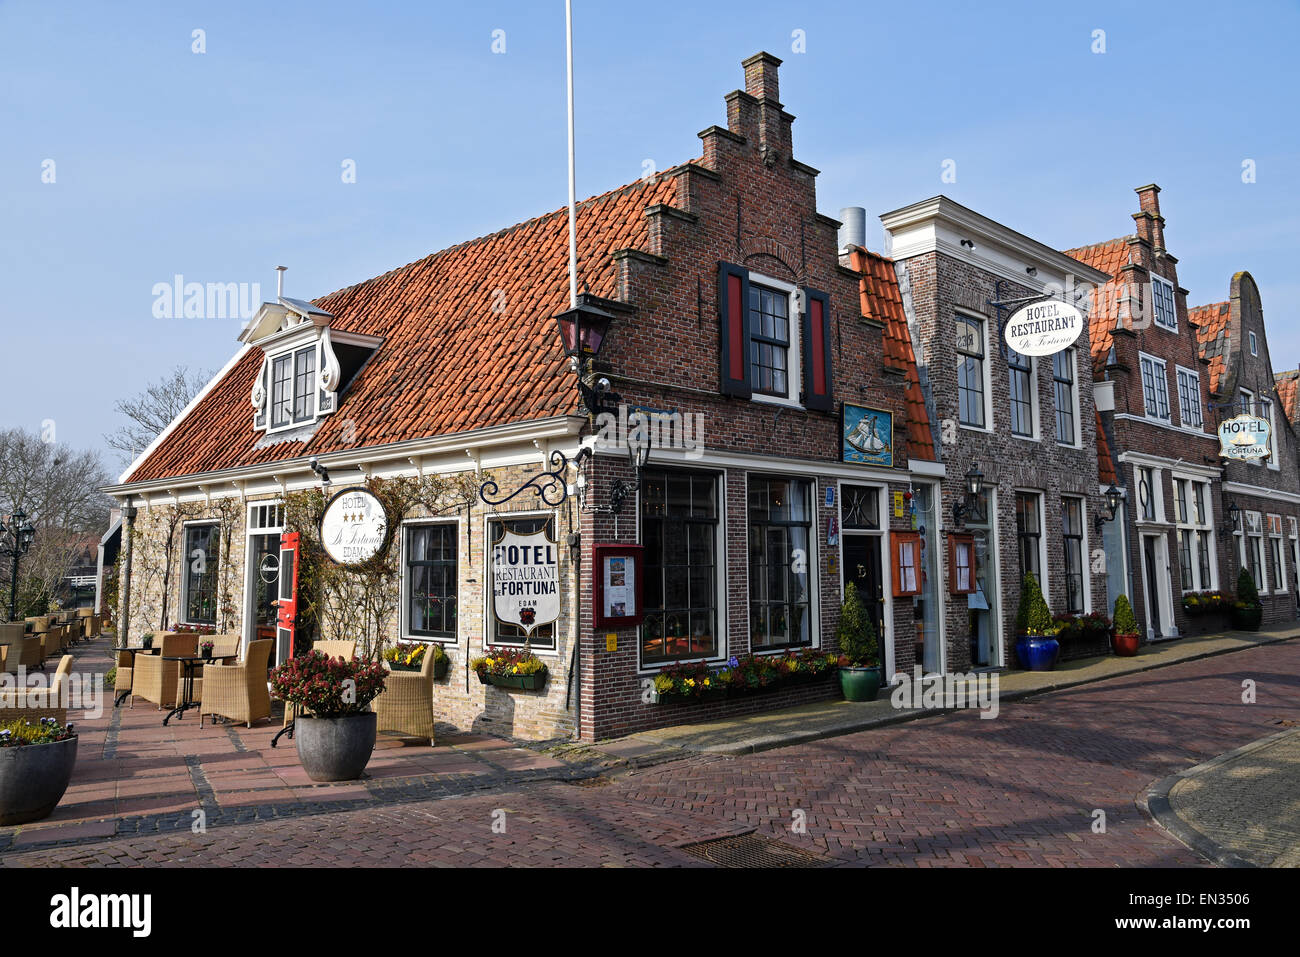 Hotel De Fortuna, Edam, province of North Holland, The Netherlands - Stock Image